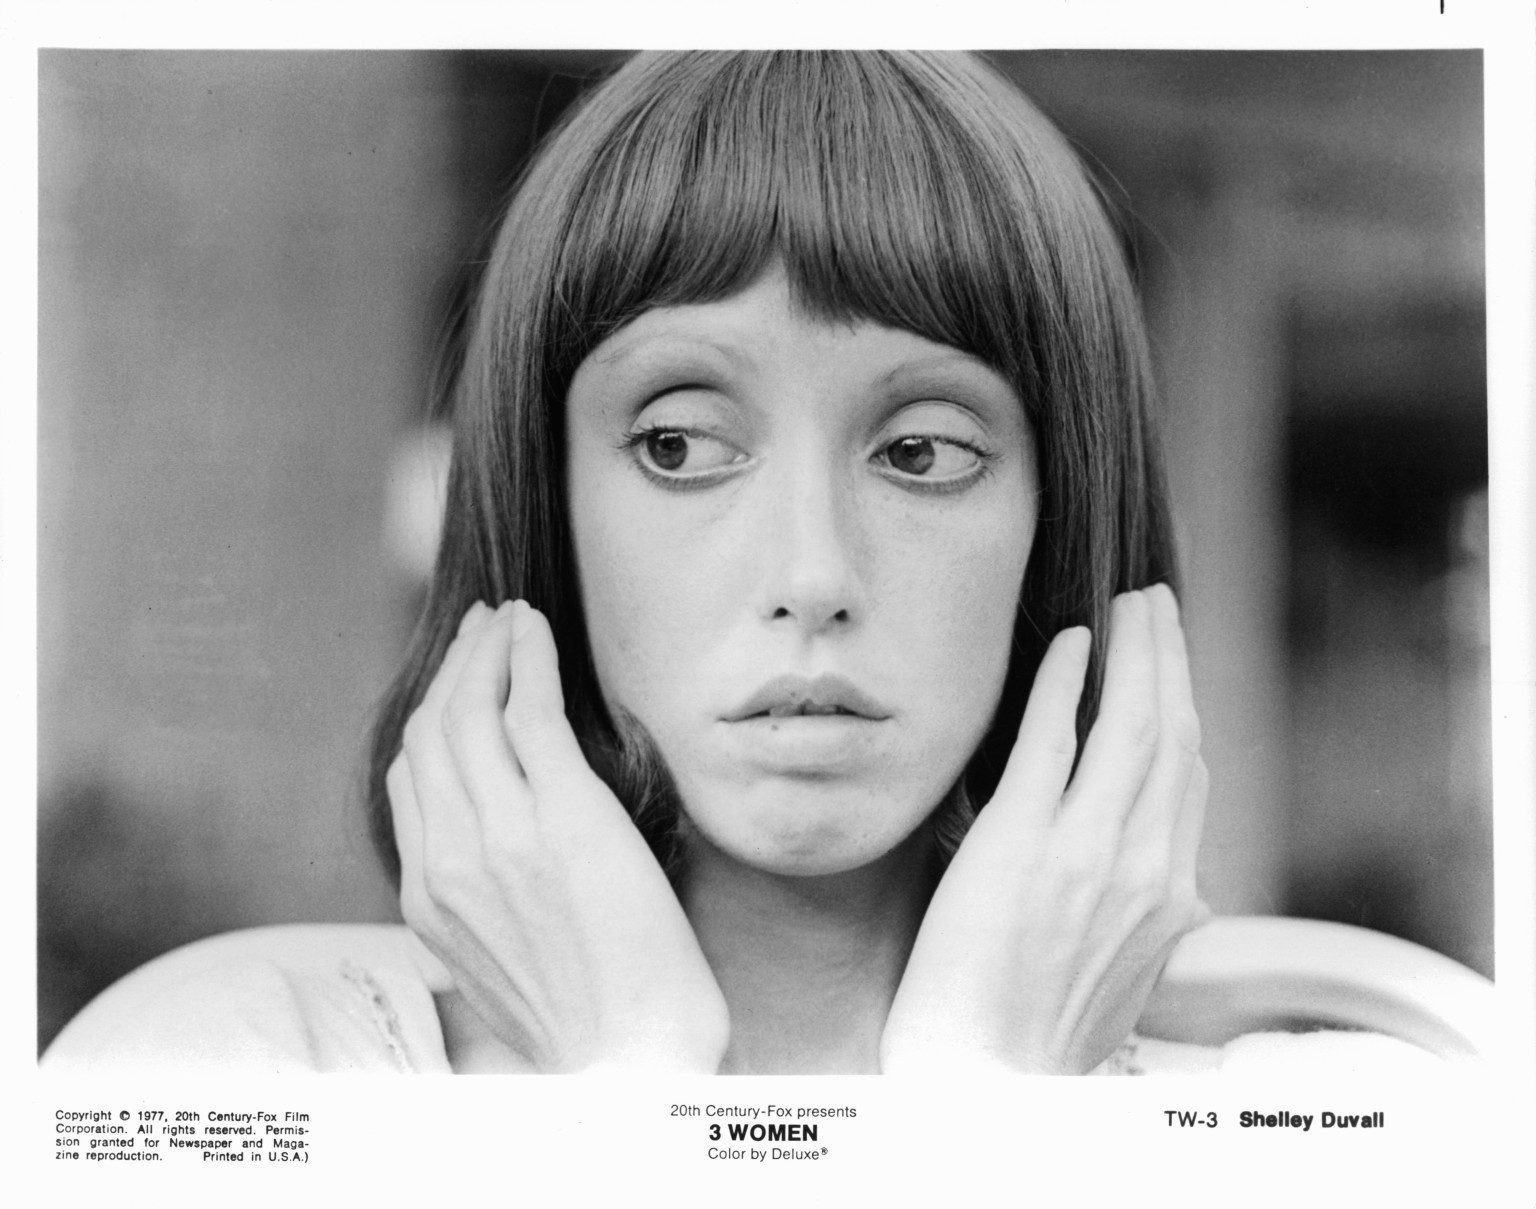 Shelley Duvall HQ wallpapers